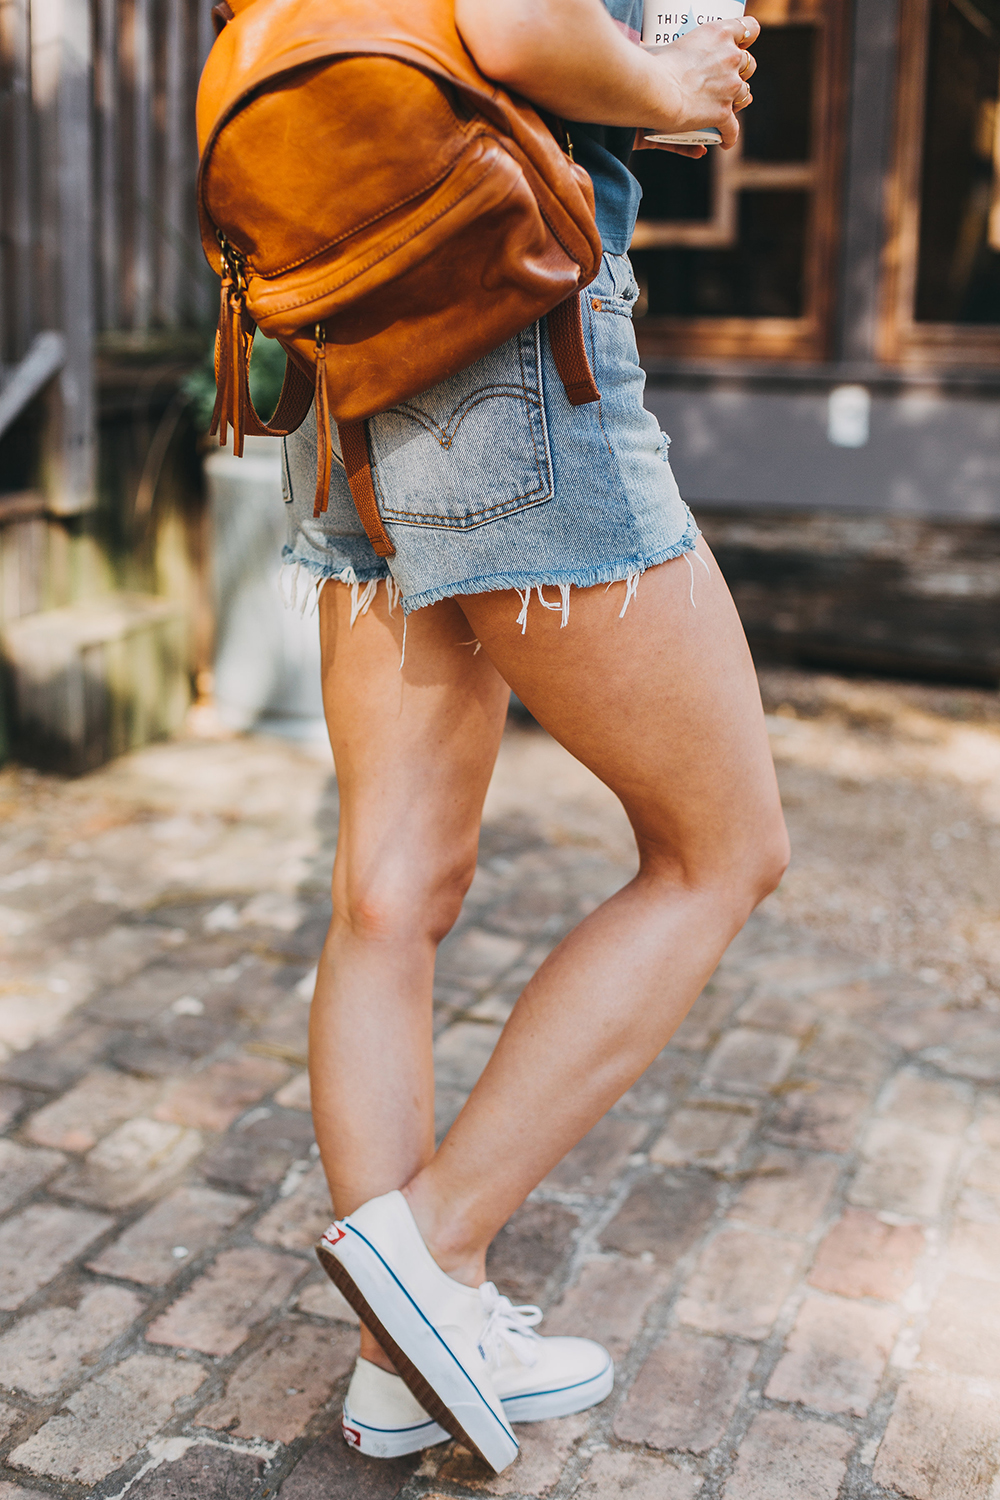 livvyland-blog-olivia-watson-austin-texas-fashion-style-urban-outfitters-striped-vintage-tee-levis-denim-wedgie-shorts-madewell-mini-leather-backpack-4